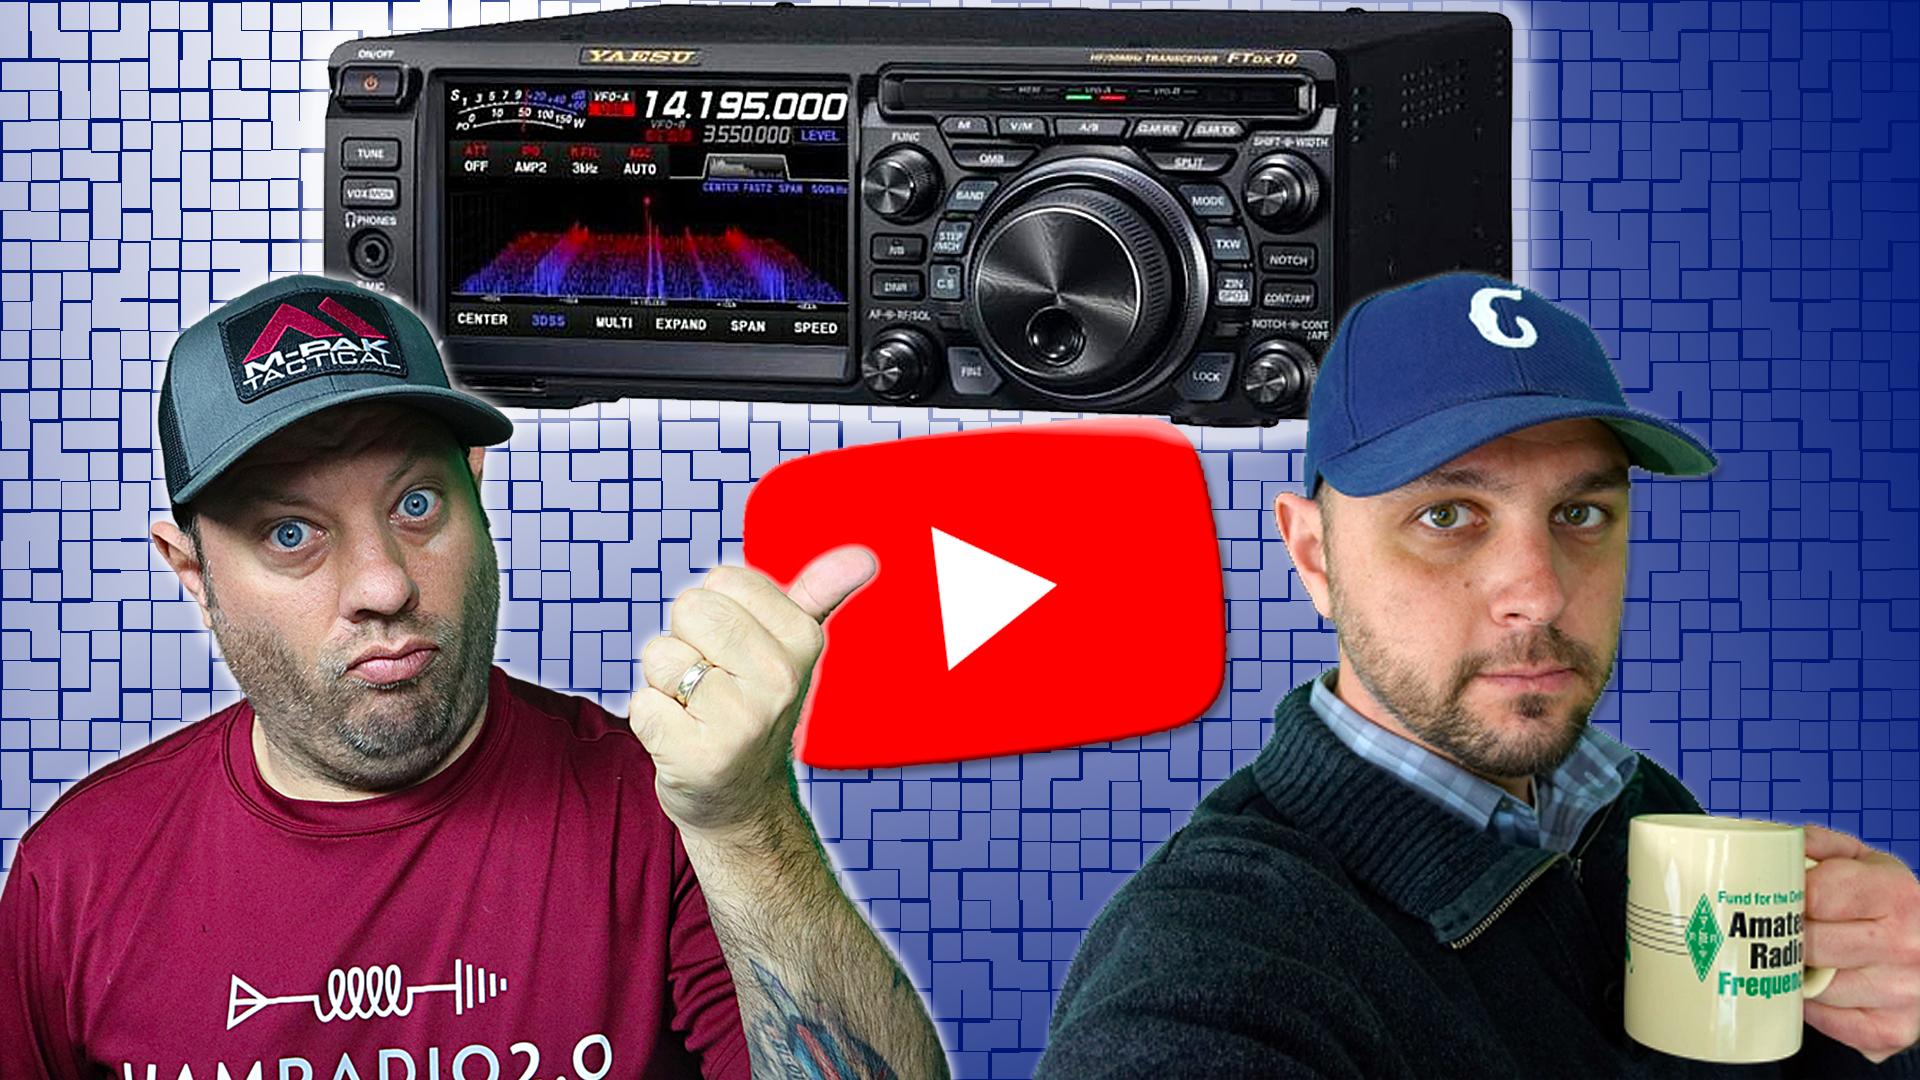 Episode 589: Yaesu FTDX-10 Menu and Feature Overview with W9FFF Ham Radio Dude